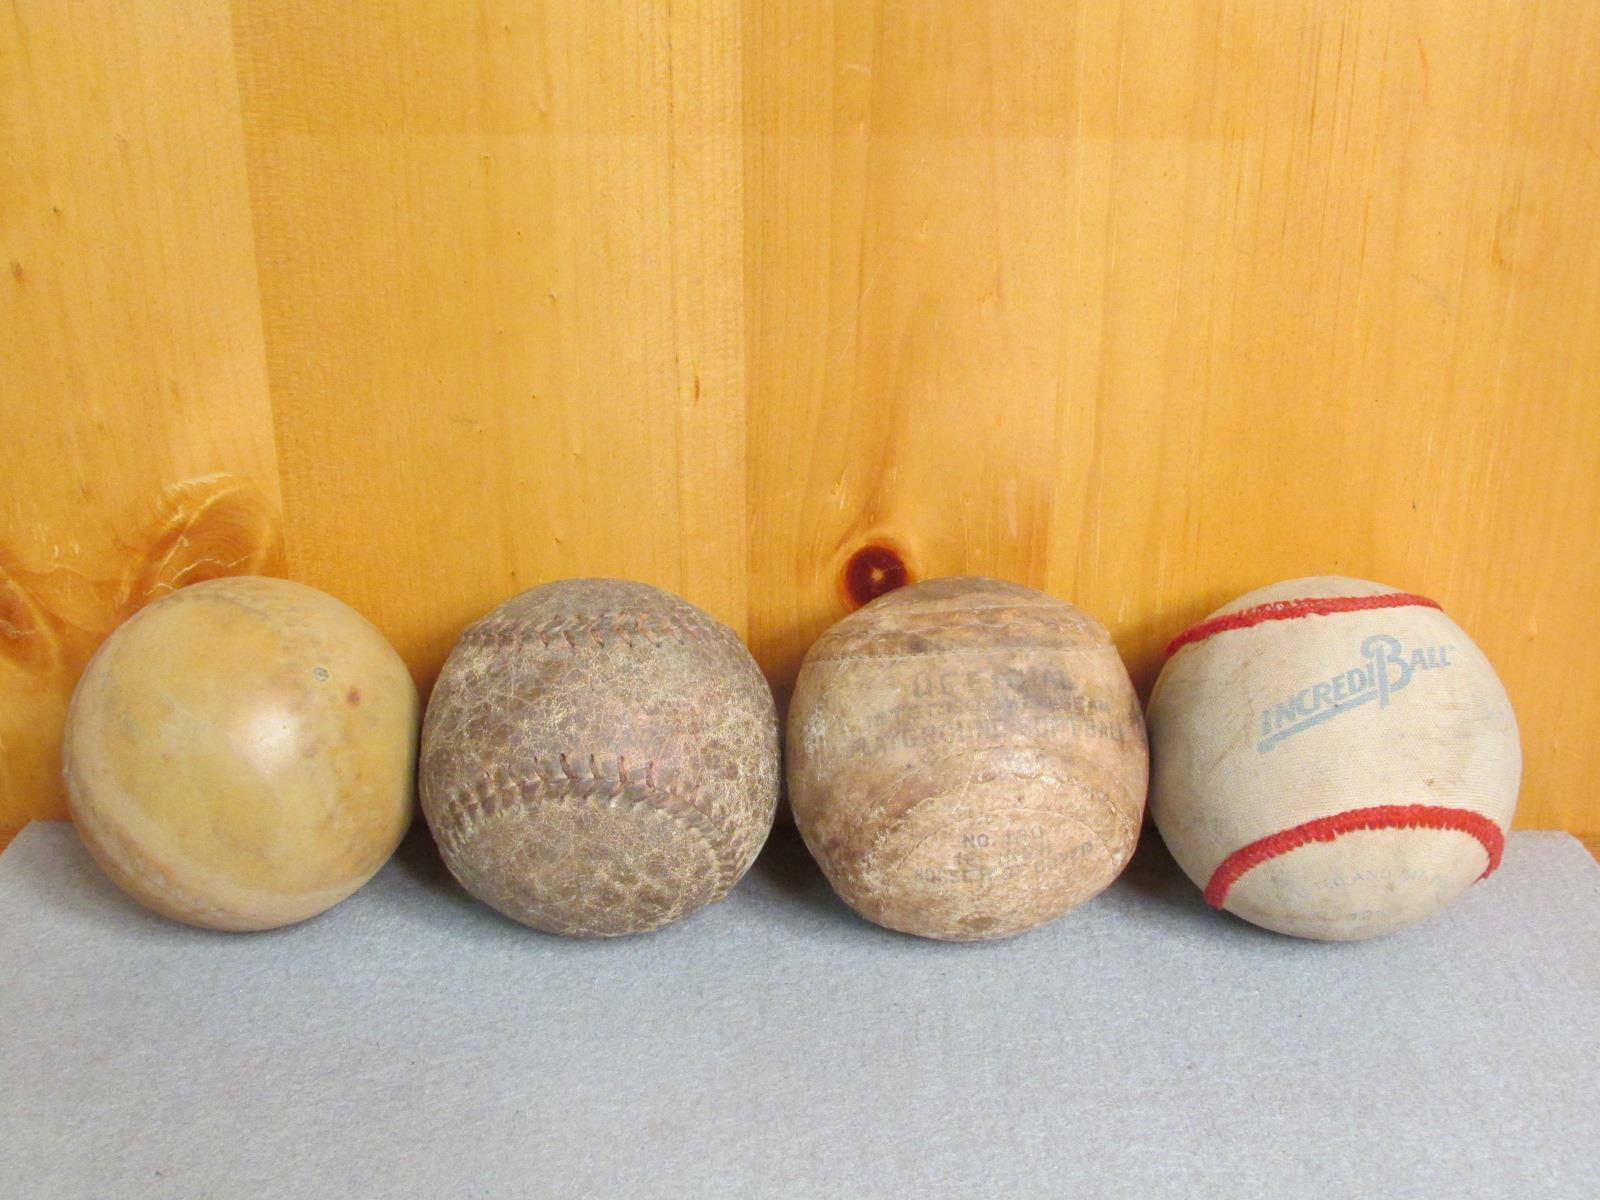 Vintage Group Leder & Anderes Antik Softbälle Bildschirm Group   Baseballs